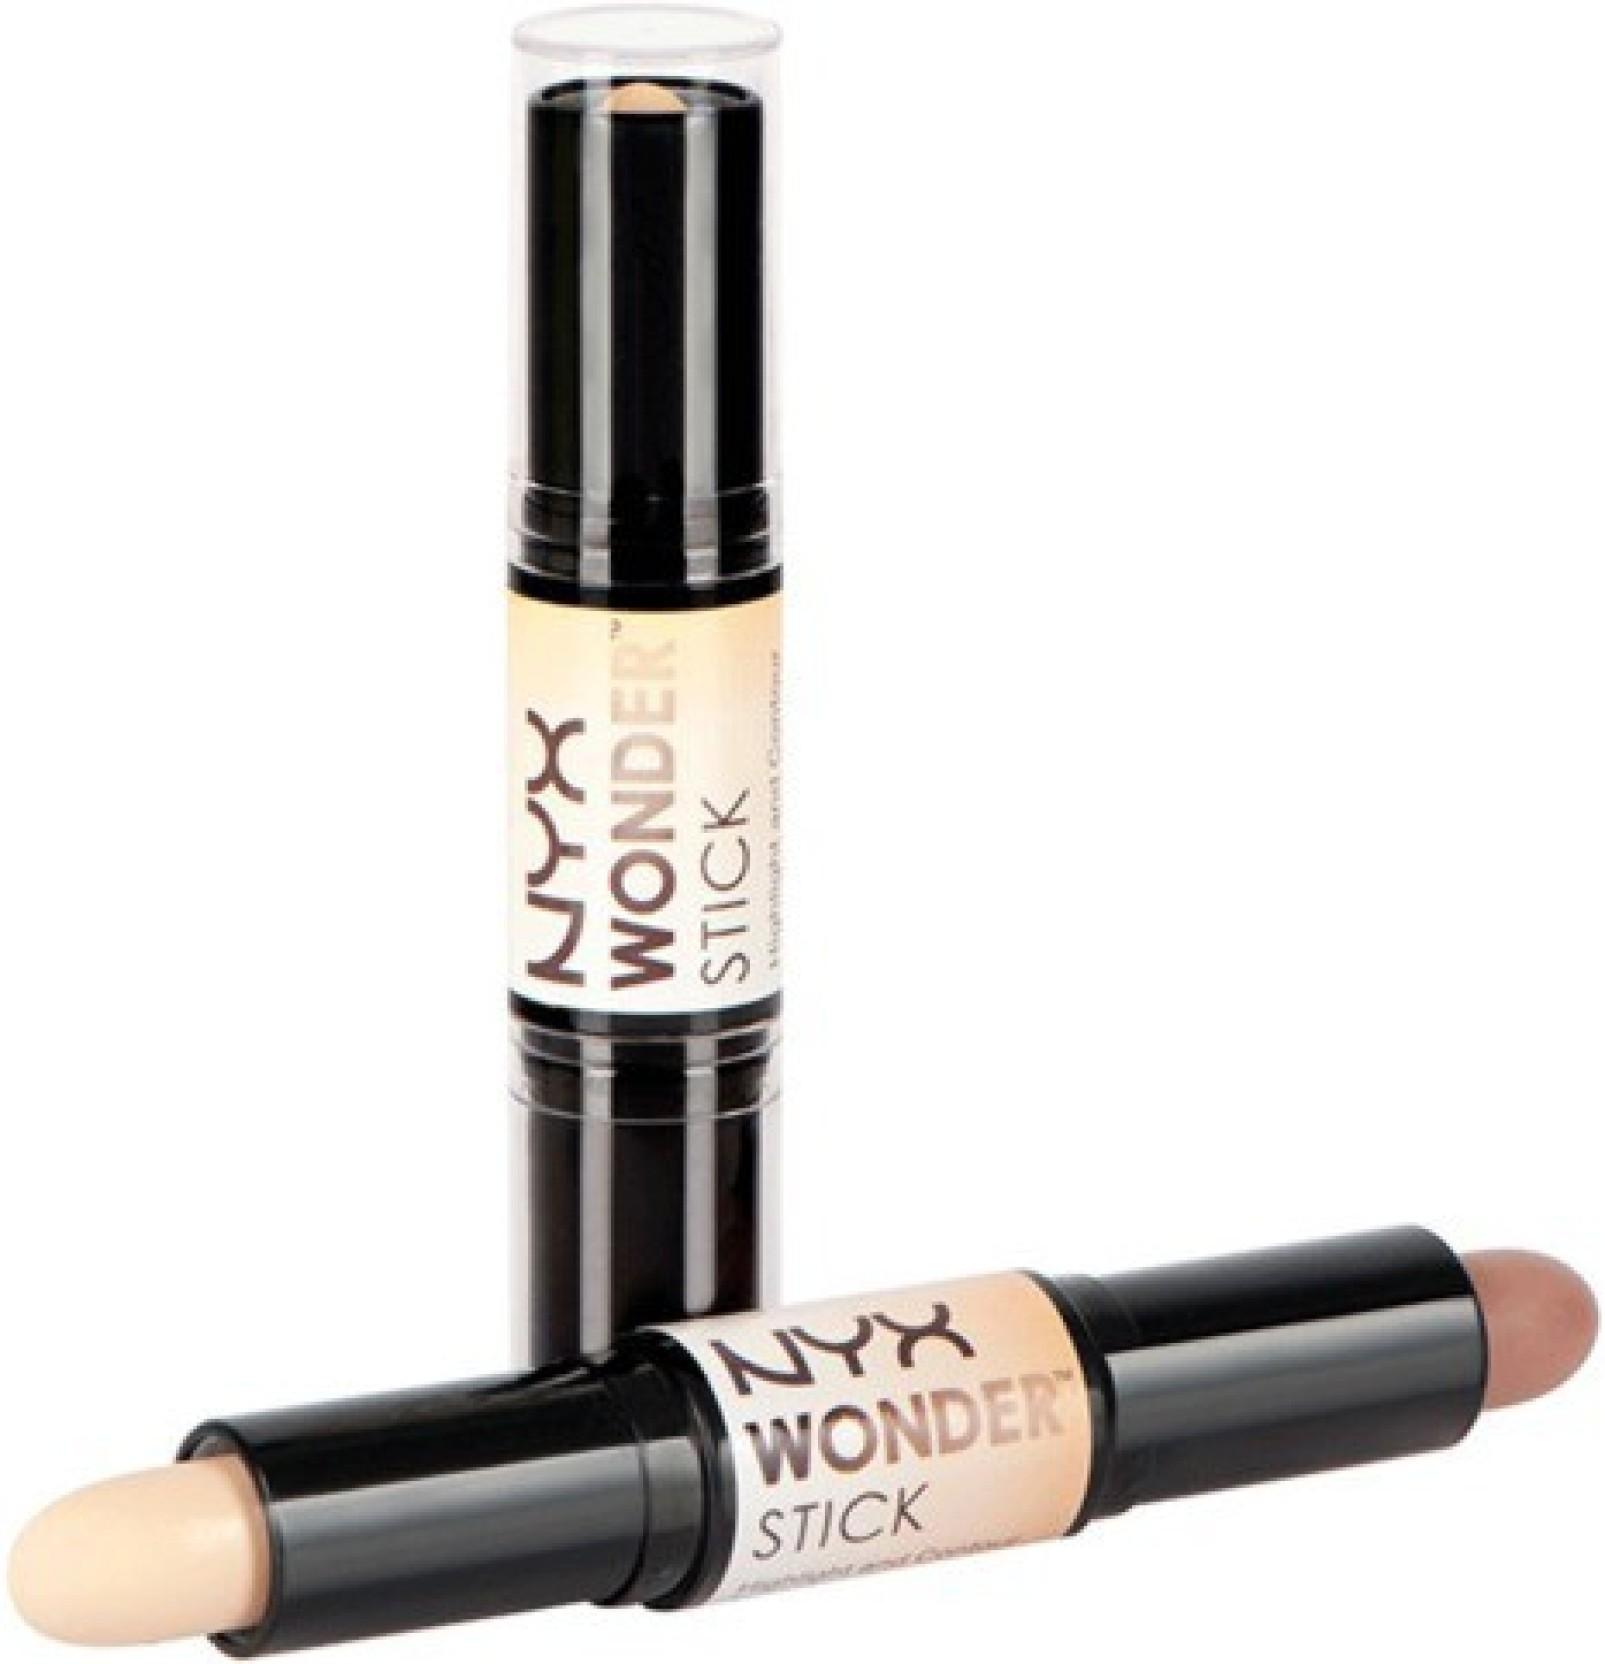 Nyx Wonder Stick Highlight And Contour Highlighter Price Concealer Share